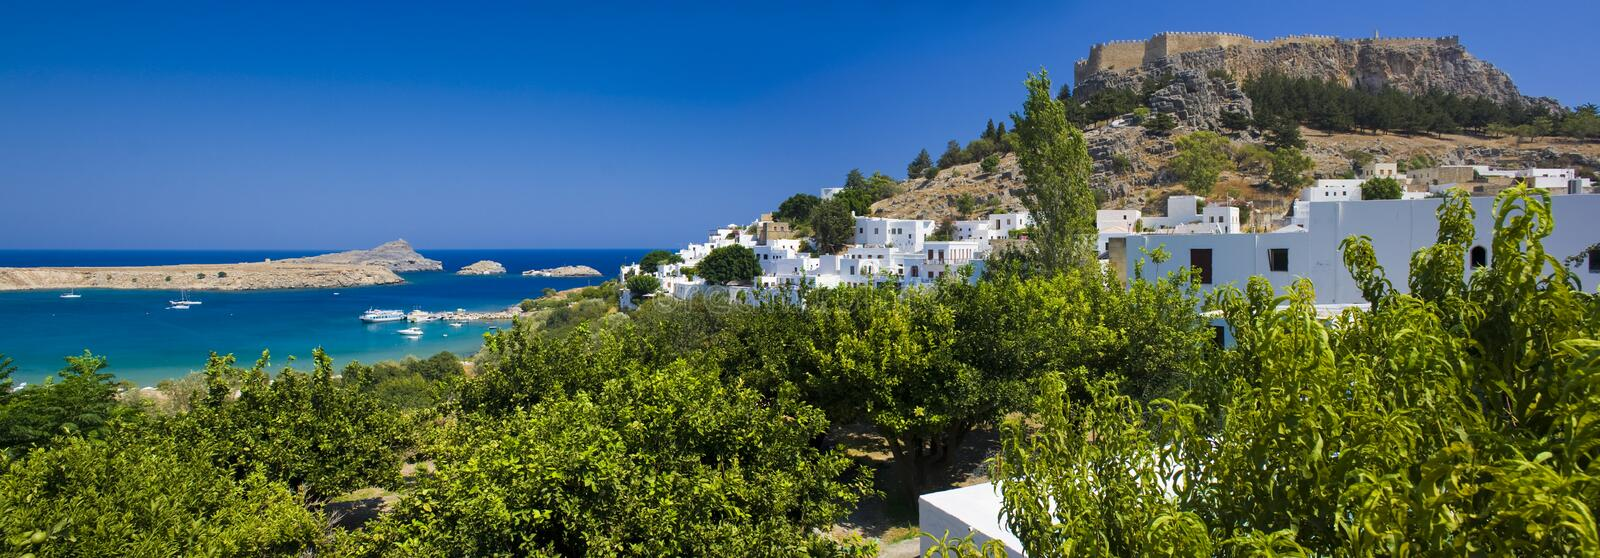 Download Lindos stock image. Image of fortress, castle, culture - 21333963